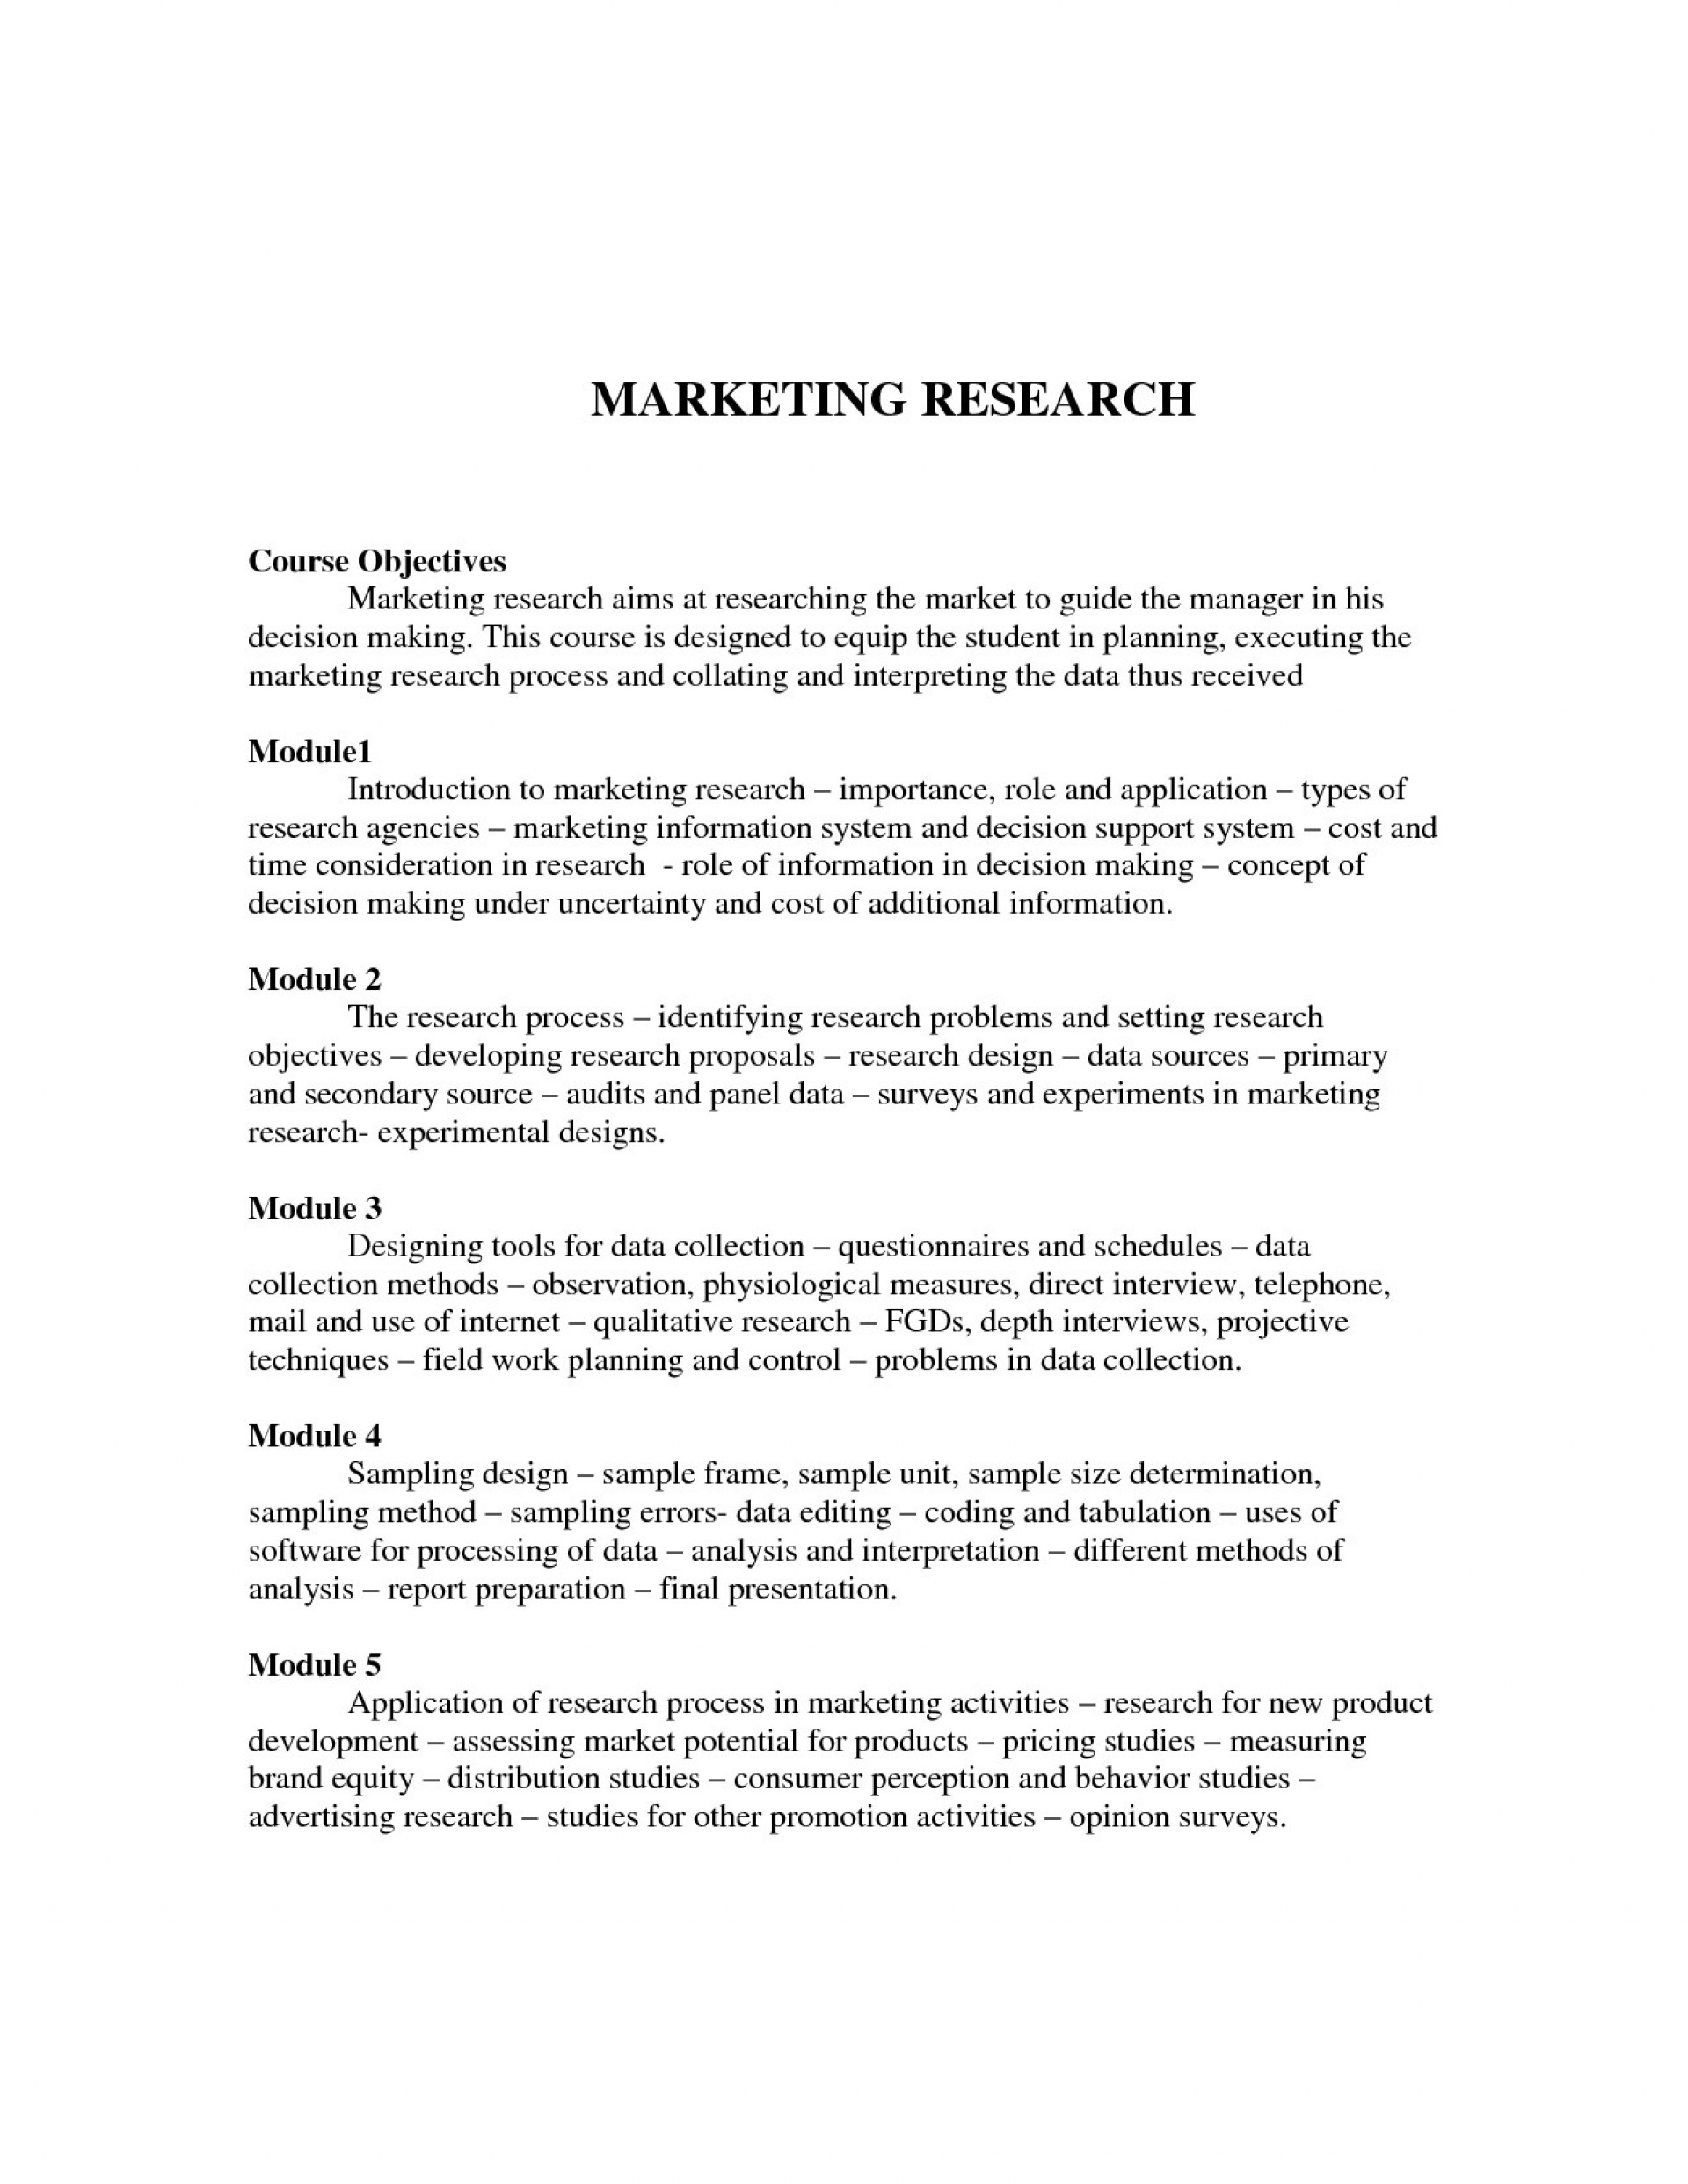 003 Marketing Researchr Introduction Sample Best Photos Of Market Proposal Template Pertaining To Design Presentation Techniques For And Project Proposals Rare Research Paper 1920